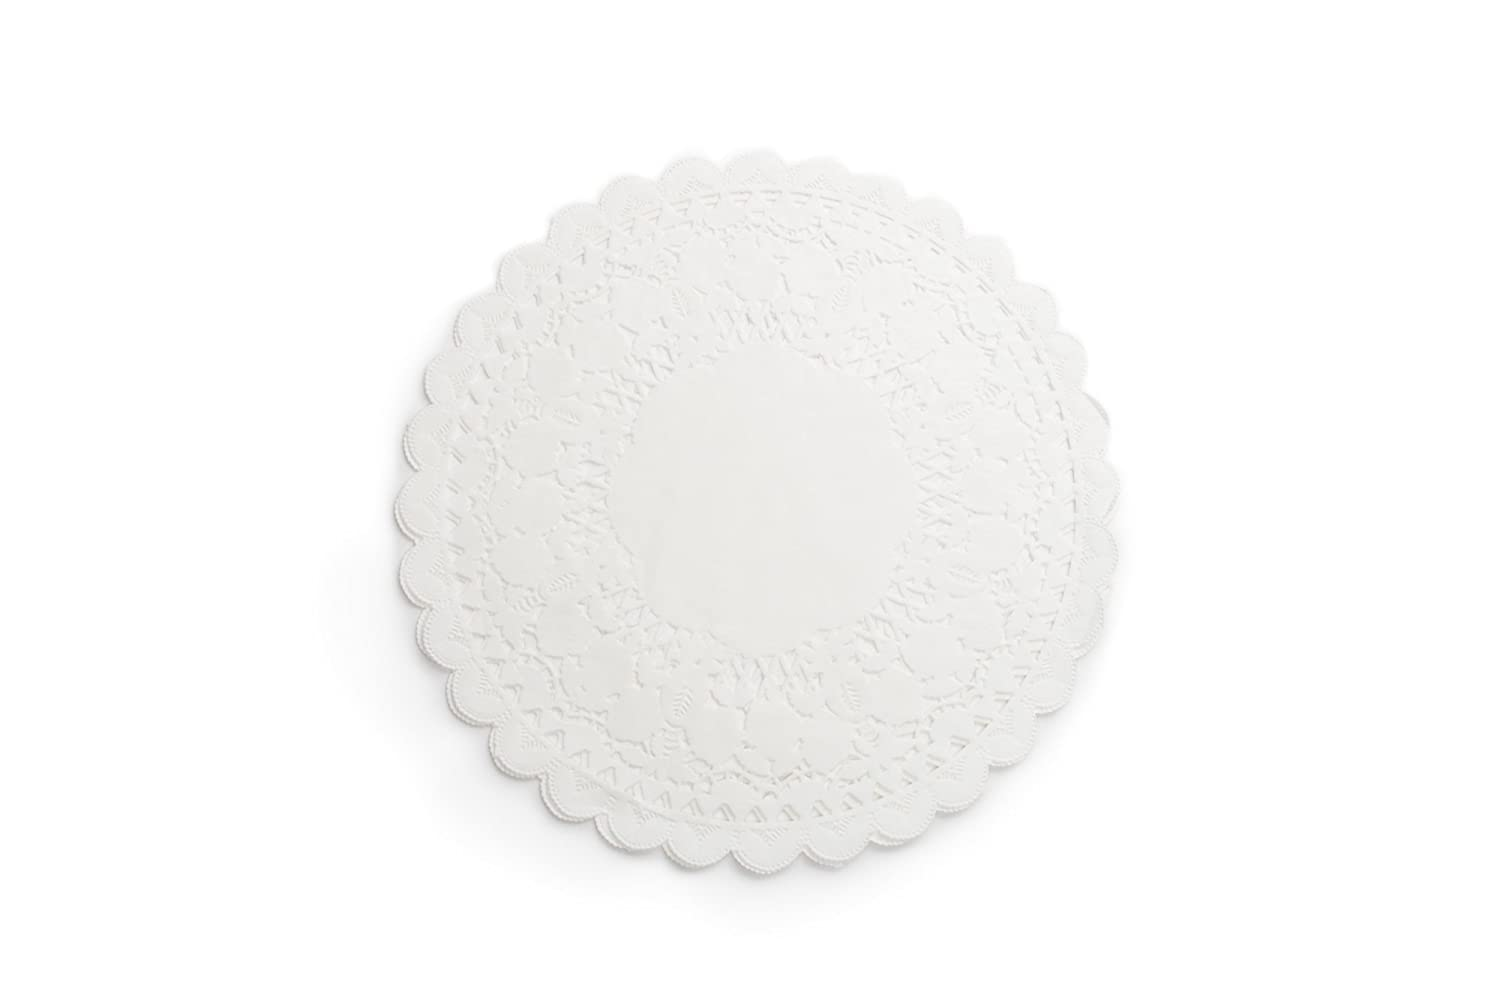 Pack of 36 Fox Run 4370 Paper Lace Doilies 5-Inch